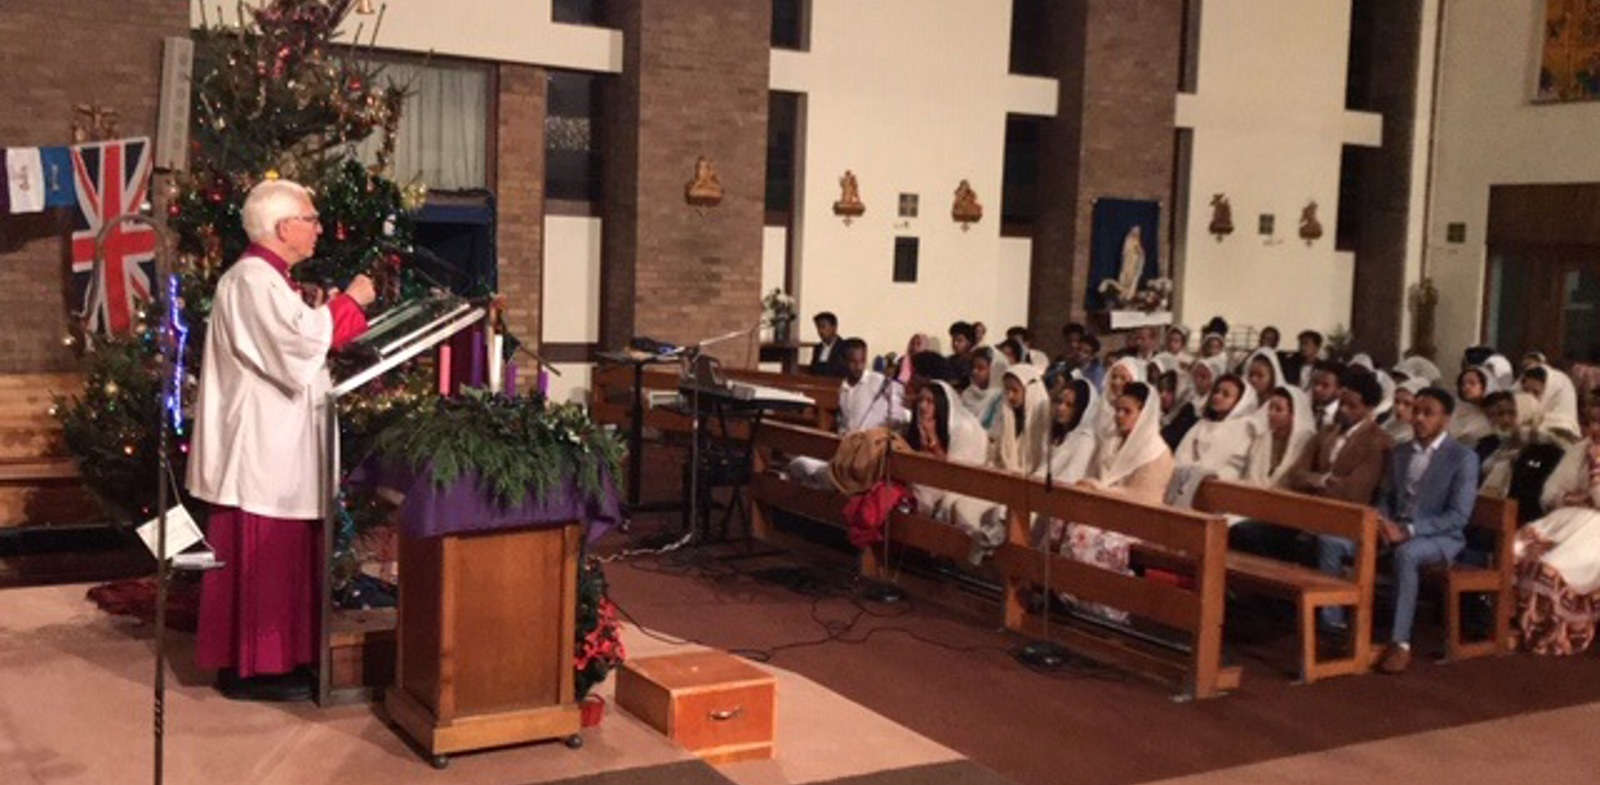 Christmas Mass of the Eritrean Community